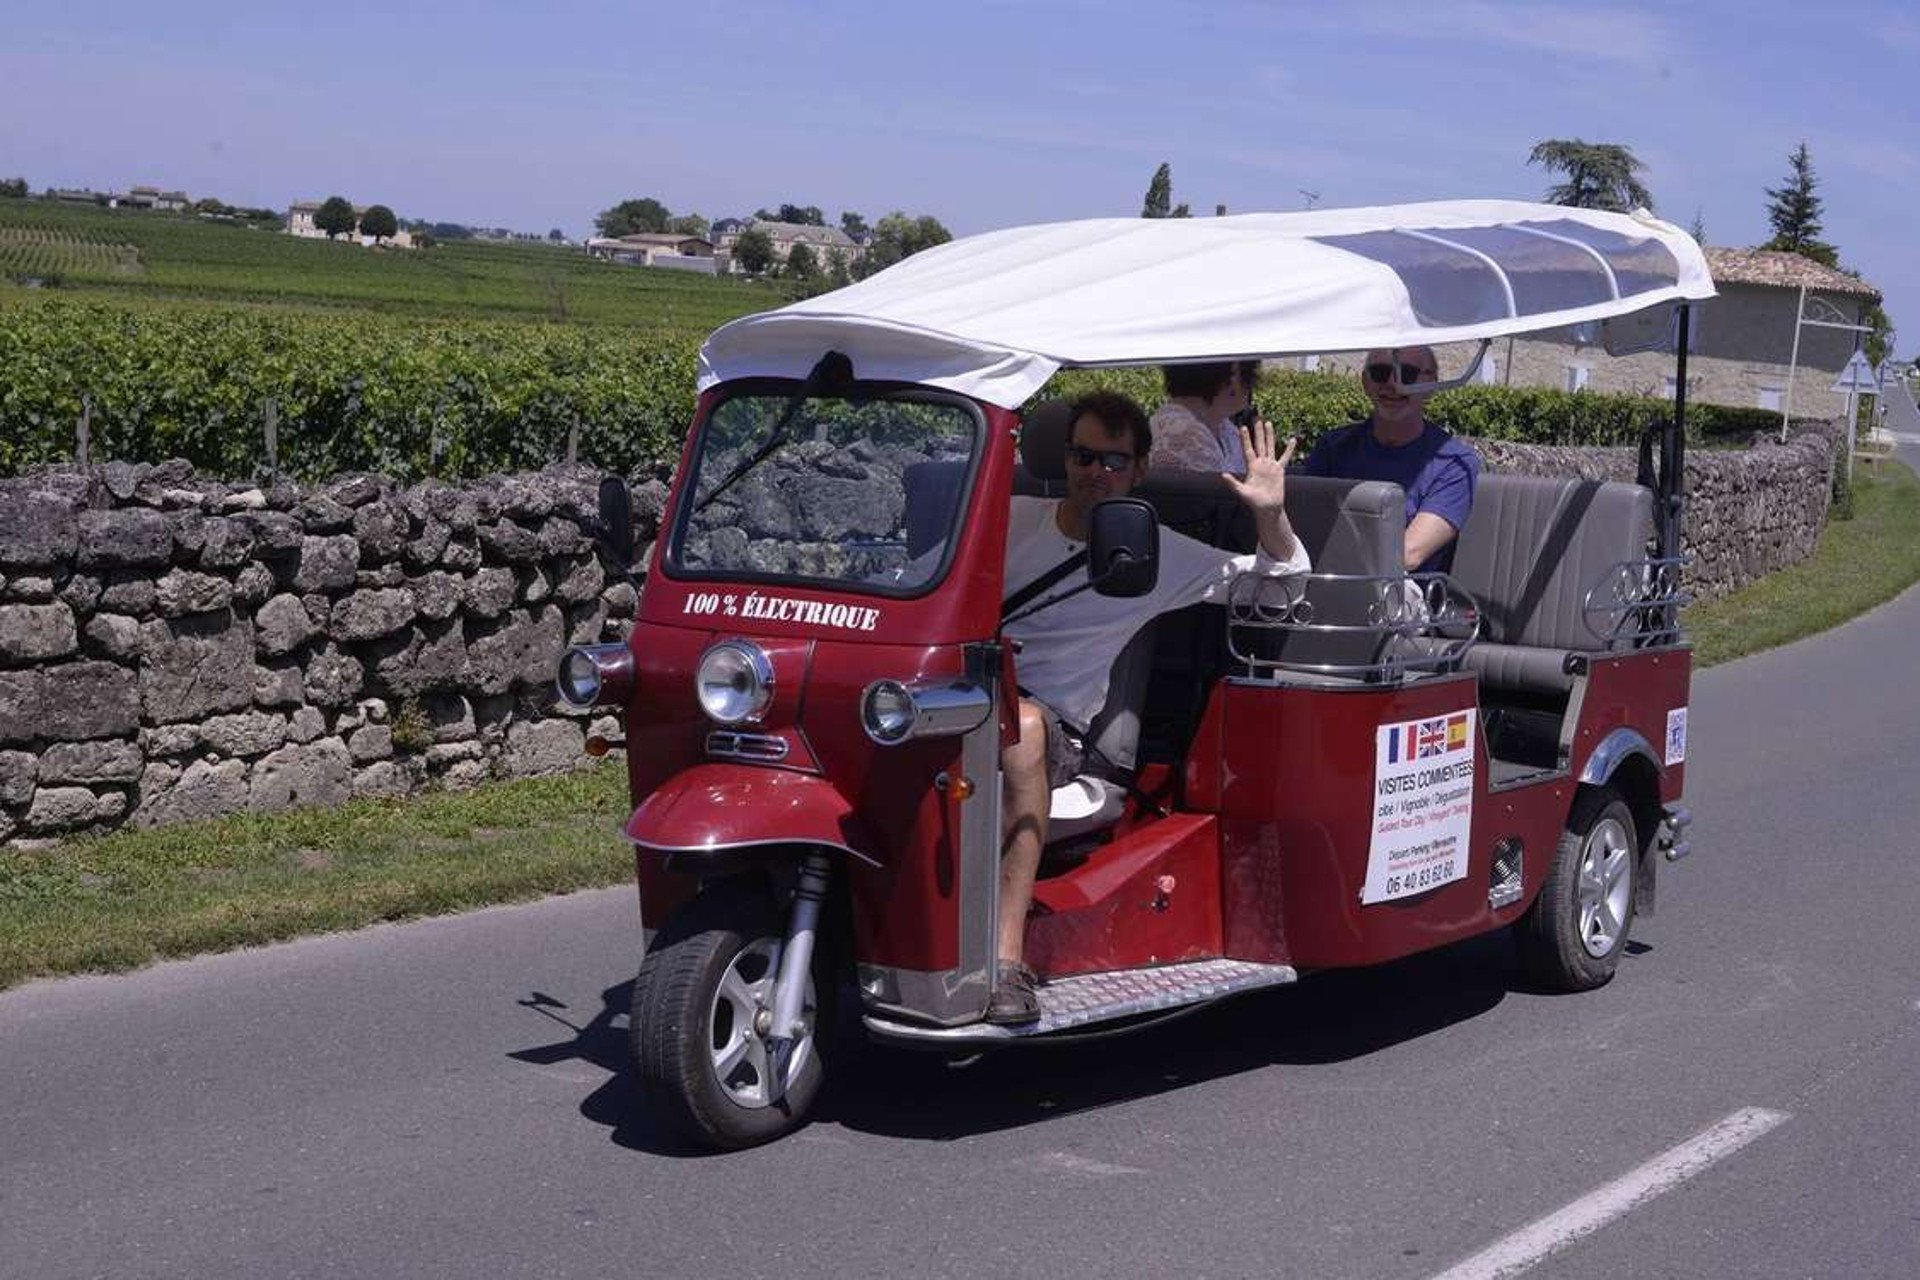 The e-tuktuk and his passenger on a road along the wineyards